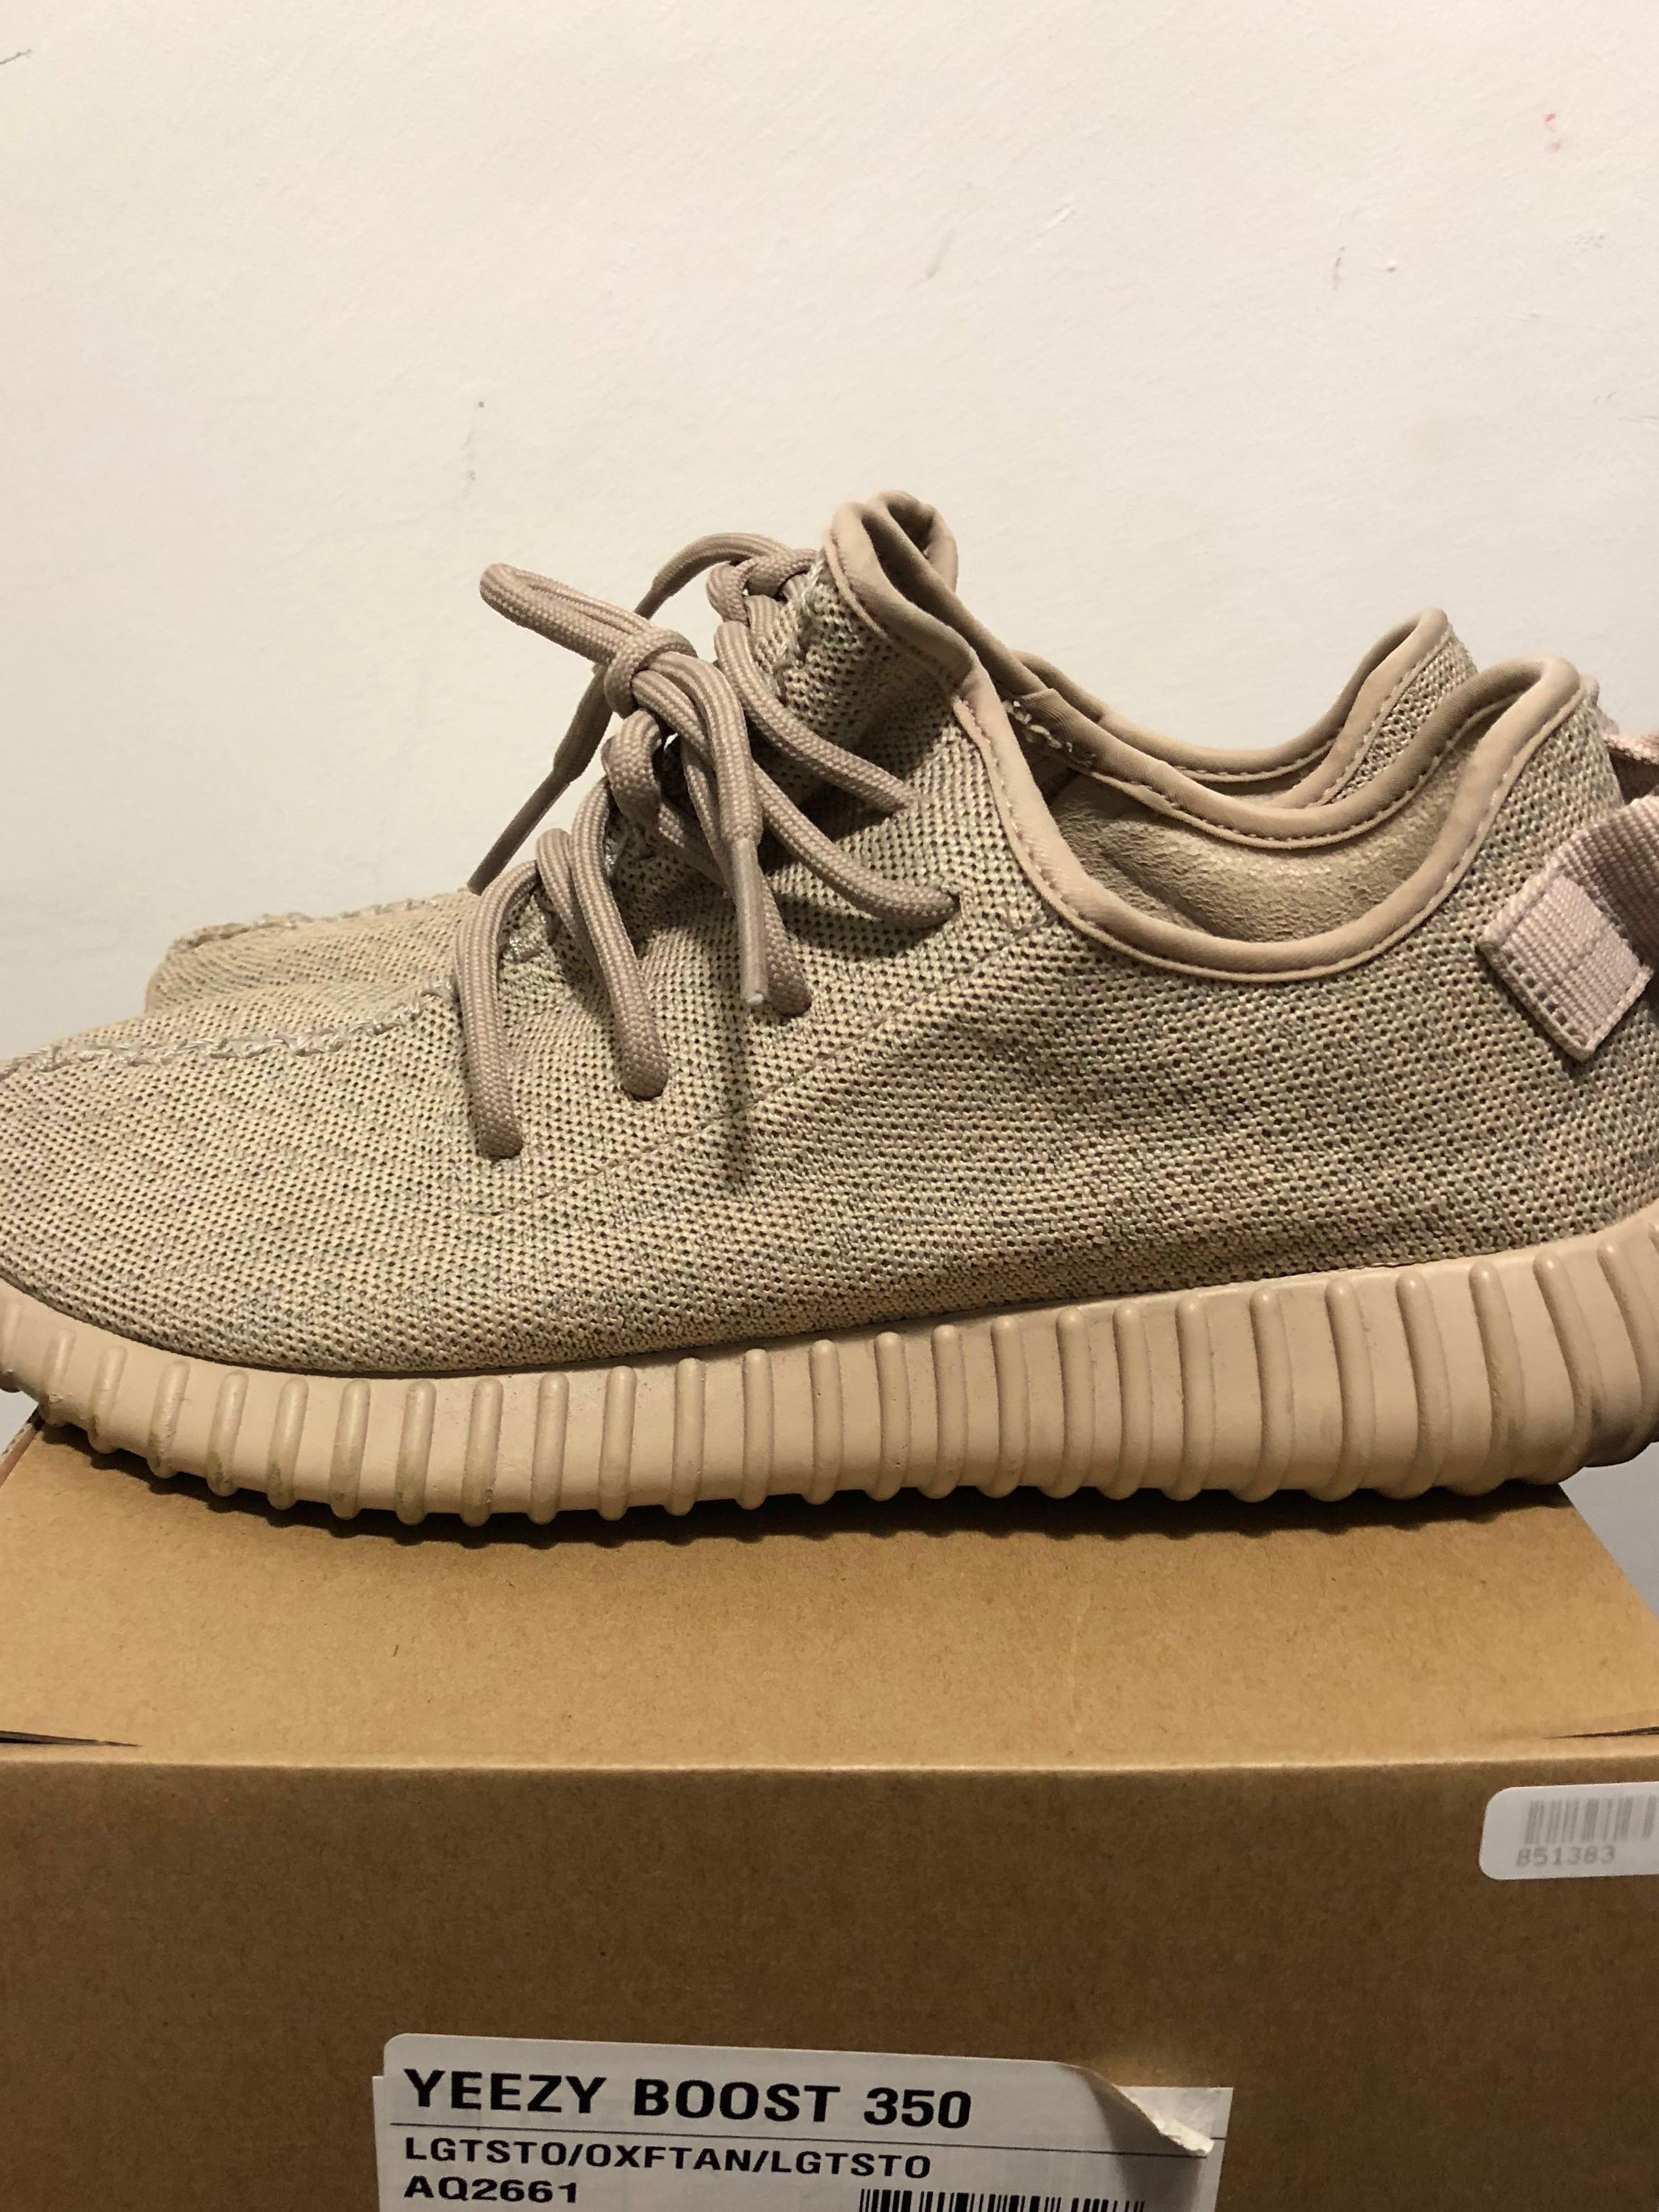 bf6214d8ed2c7 Yeezy Boost 350 Oxford Tan